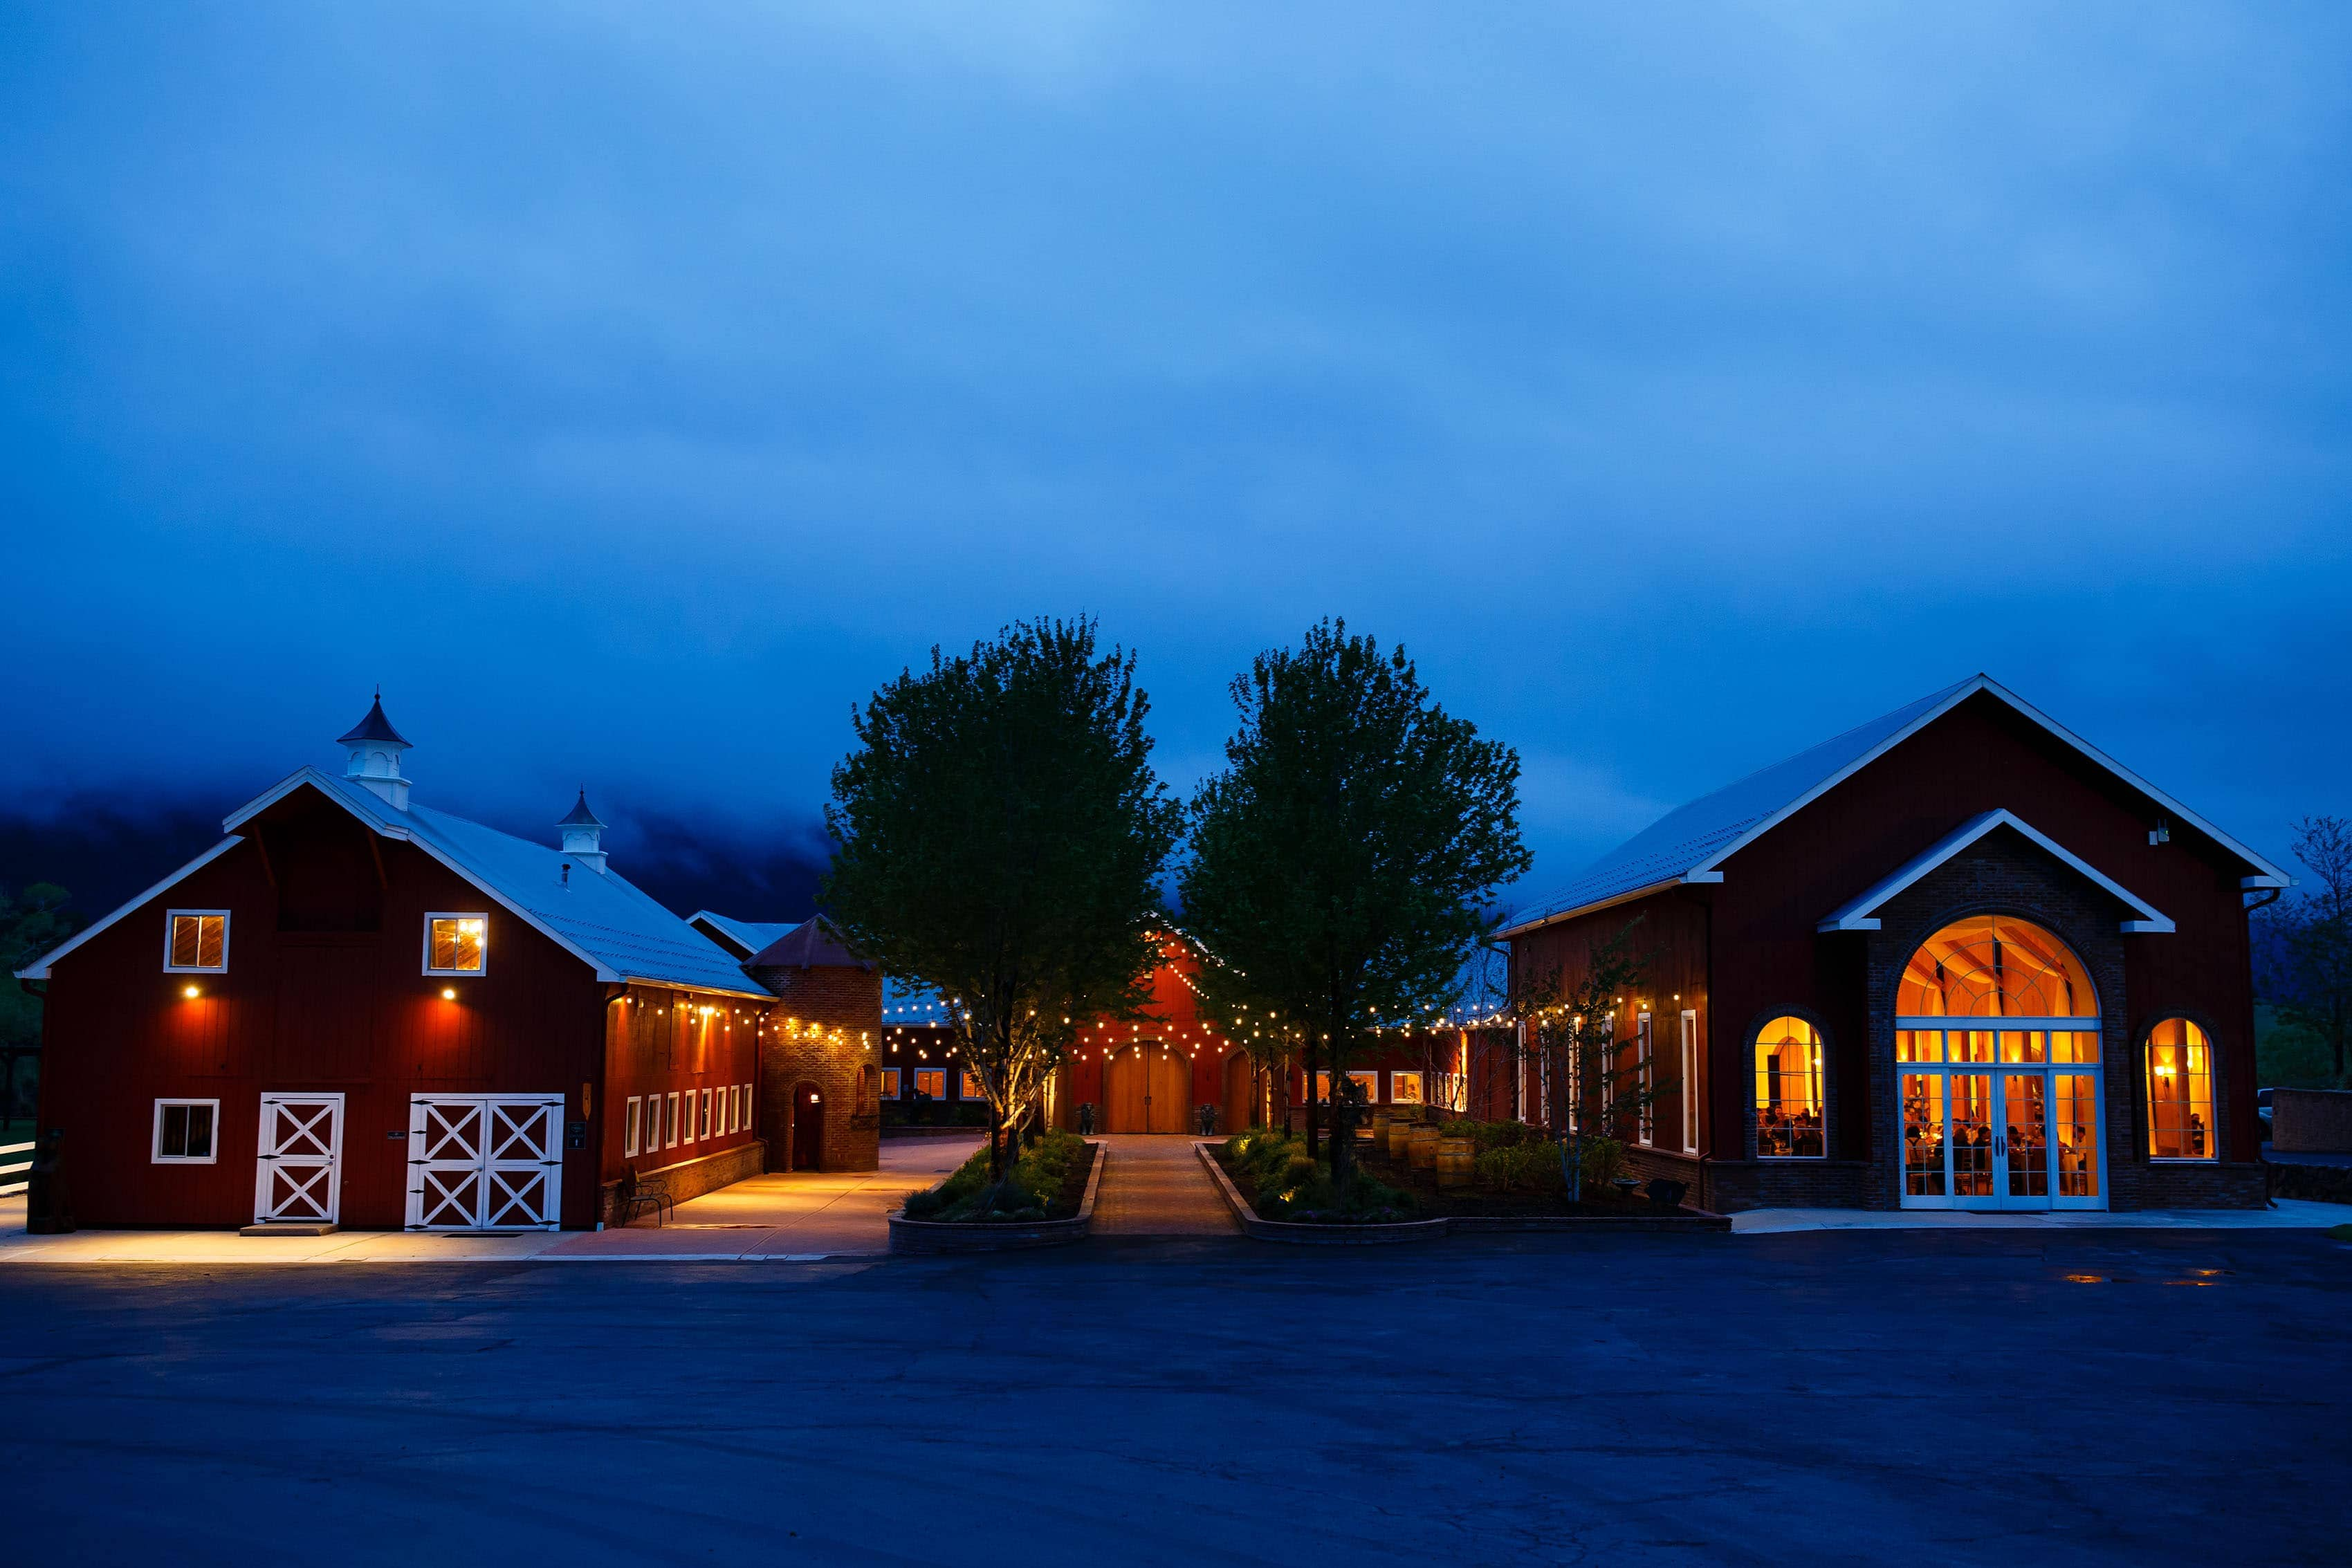 Twilight at Crooked Willow Farms wedding venue in Larkspur, Colorado